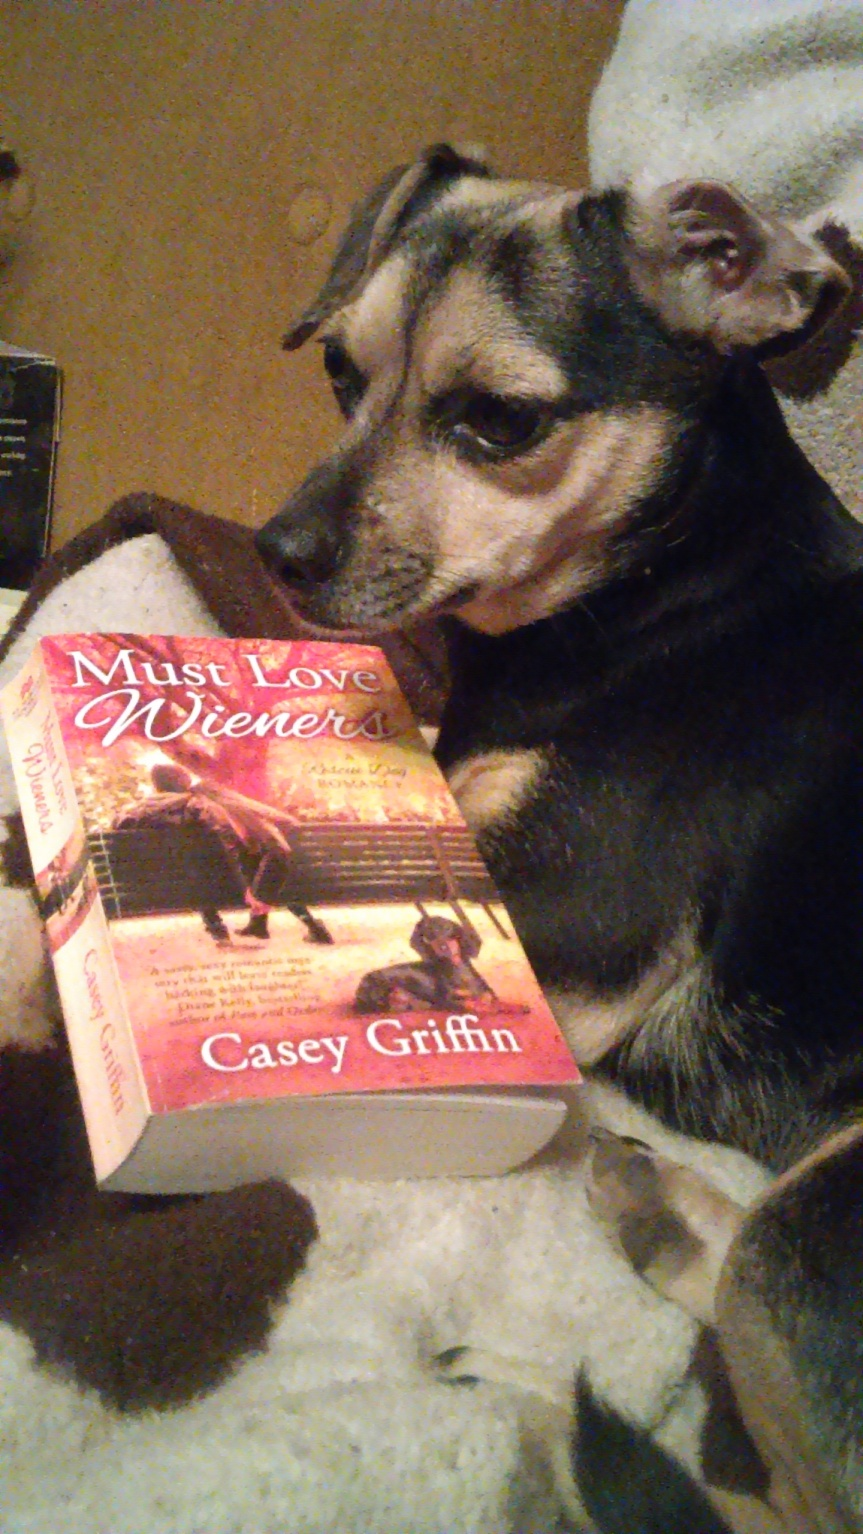 Anya's Book Review: Must Love Wieners